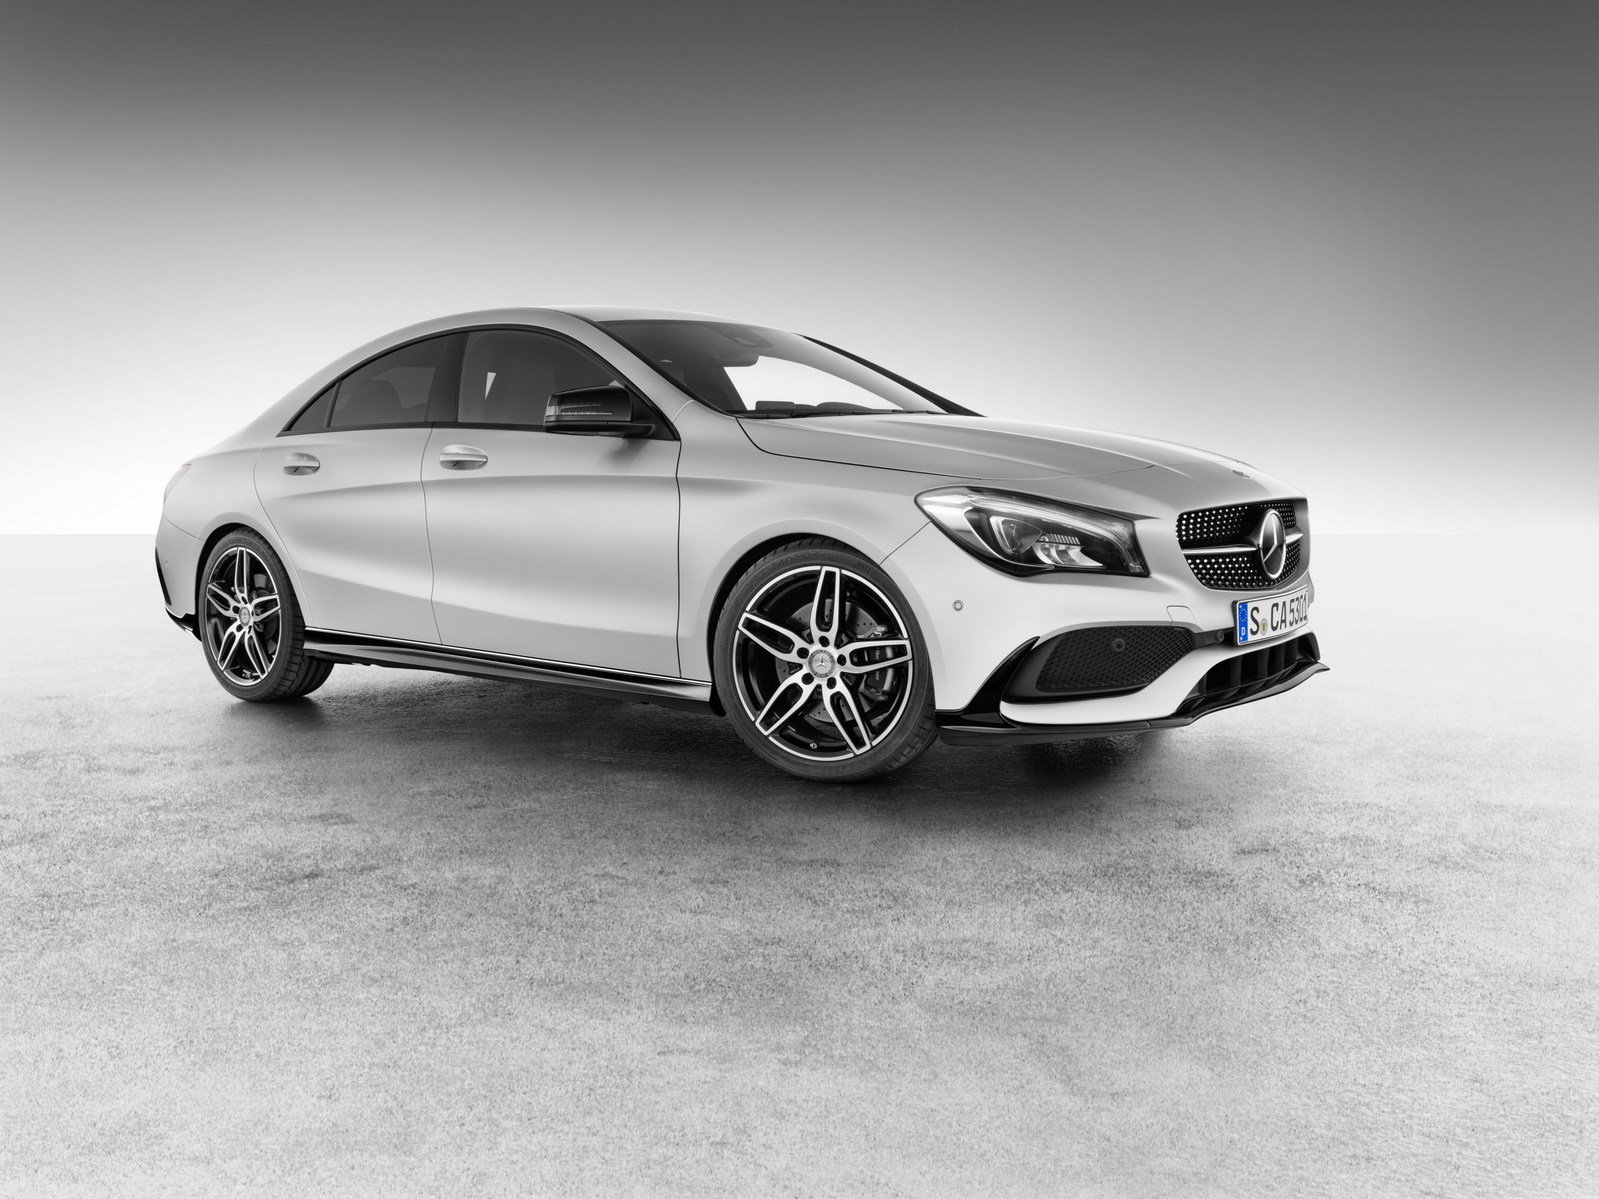 2016 mercedes benz cla with amg accessories picture for Mercedes benz accessories